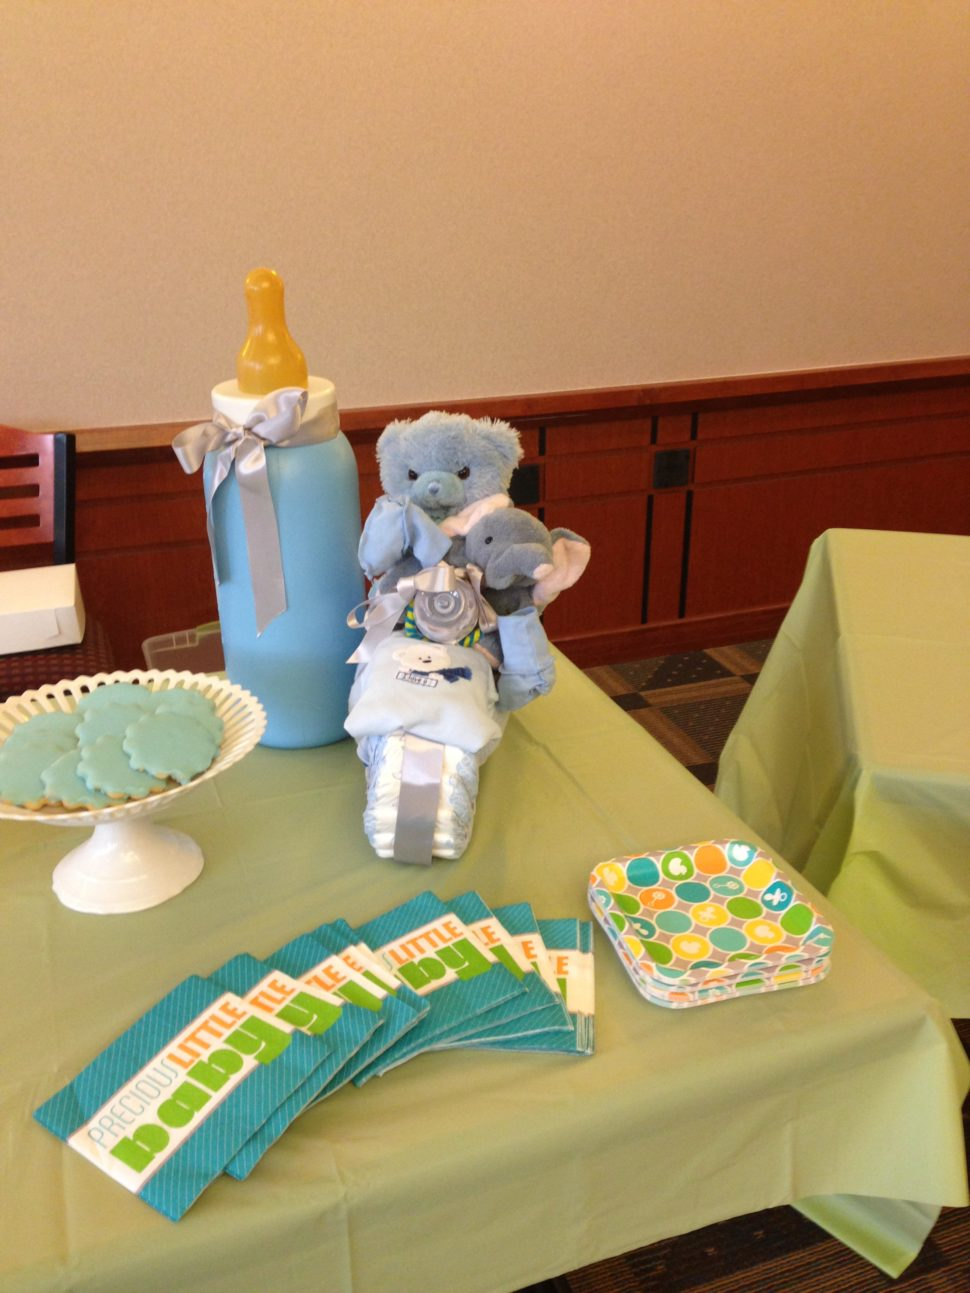 Baby Shower:64+ Splendiferous Baby Shower Hostess Gifts Photo Inspirations Baby Shower Hostess Gifts Or Baby Shower Seat With Baby Shower Messages Plus Baby Shower Prizes Together With Juegos Baby Shower As Well As Baby Shower Flyer And Baby Shower Party Favors